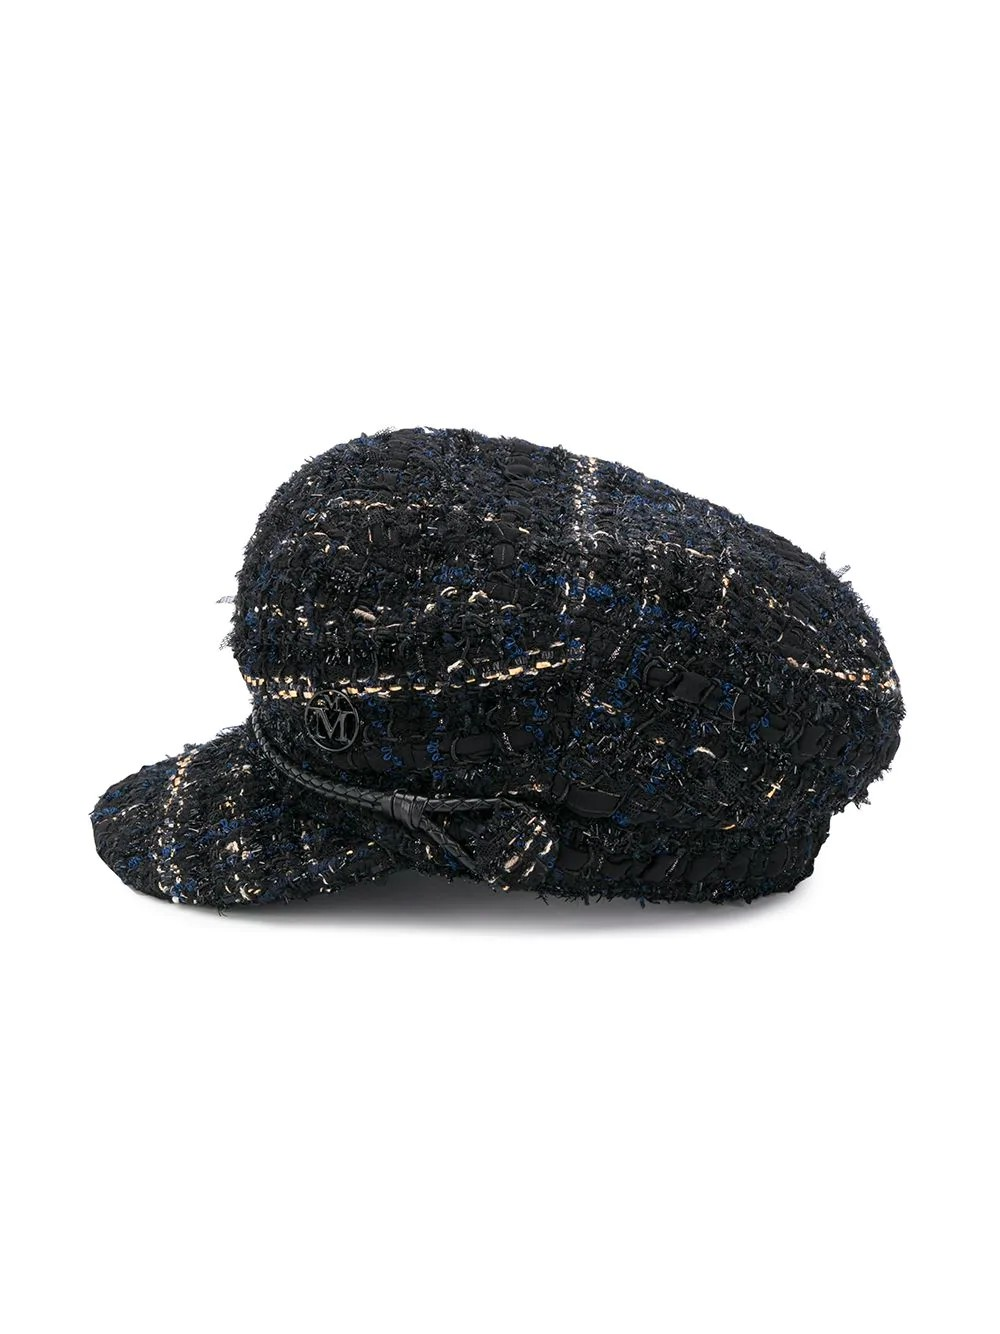 NEW ABBY HAT 20PS COCKTAIL TWEED